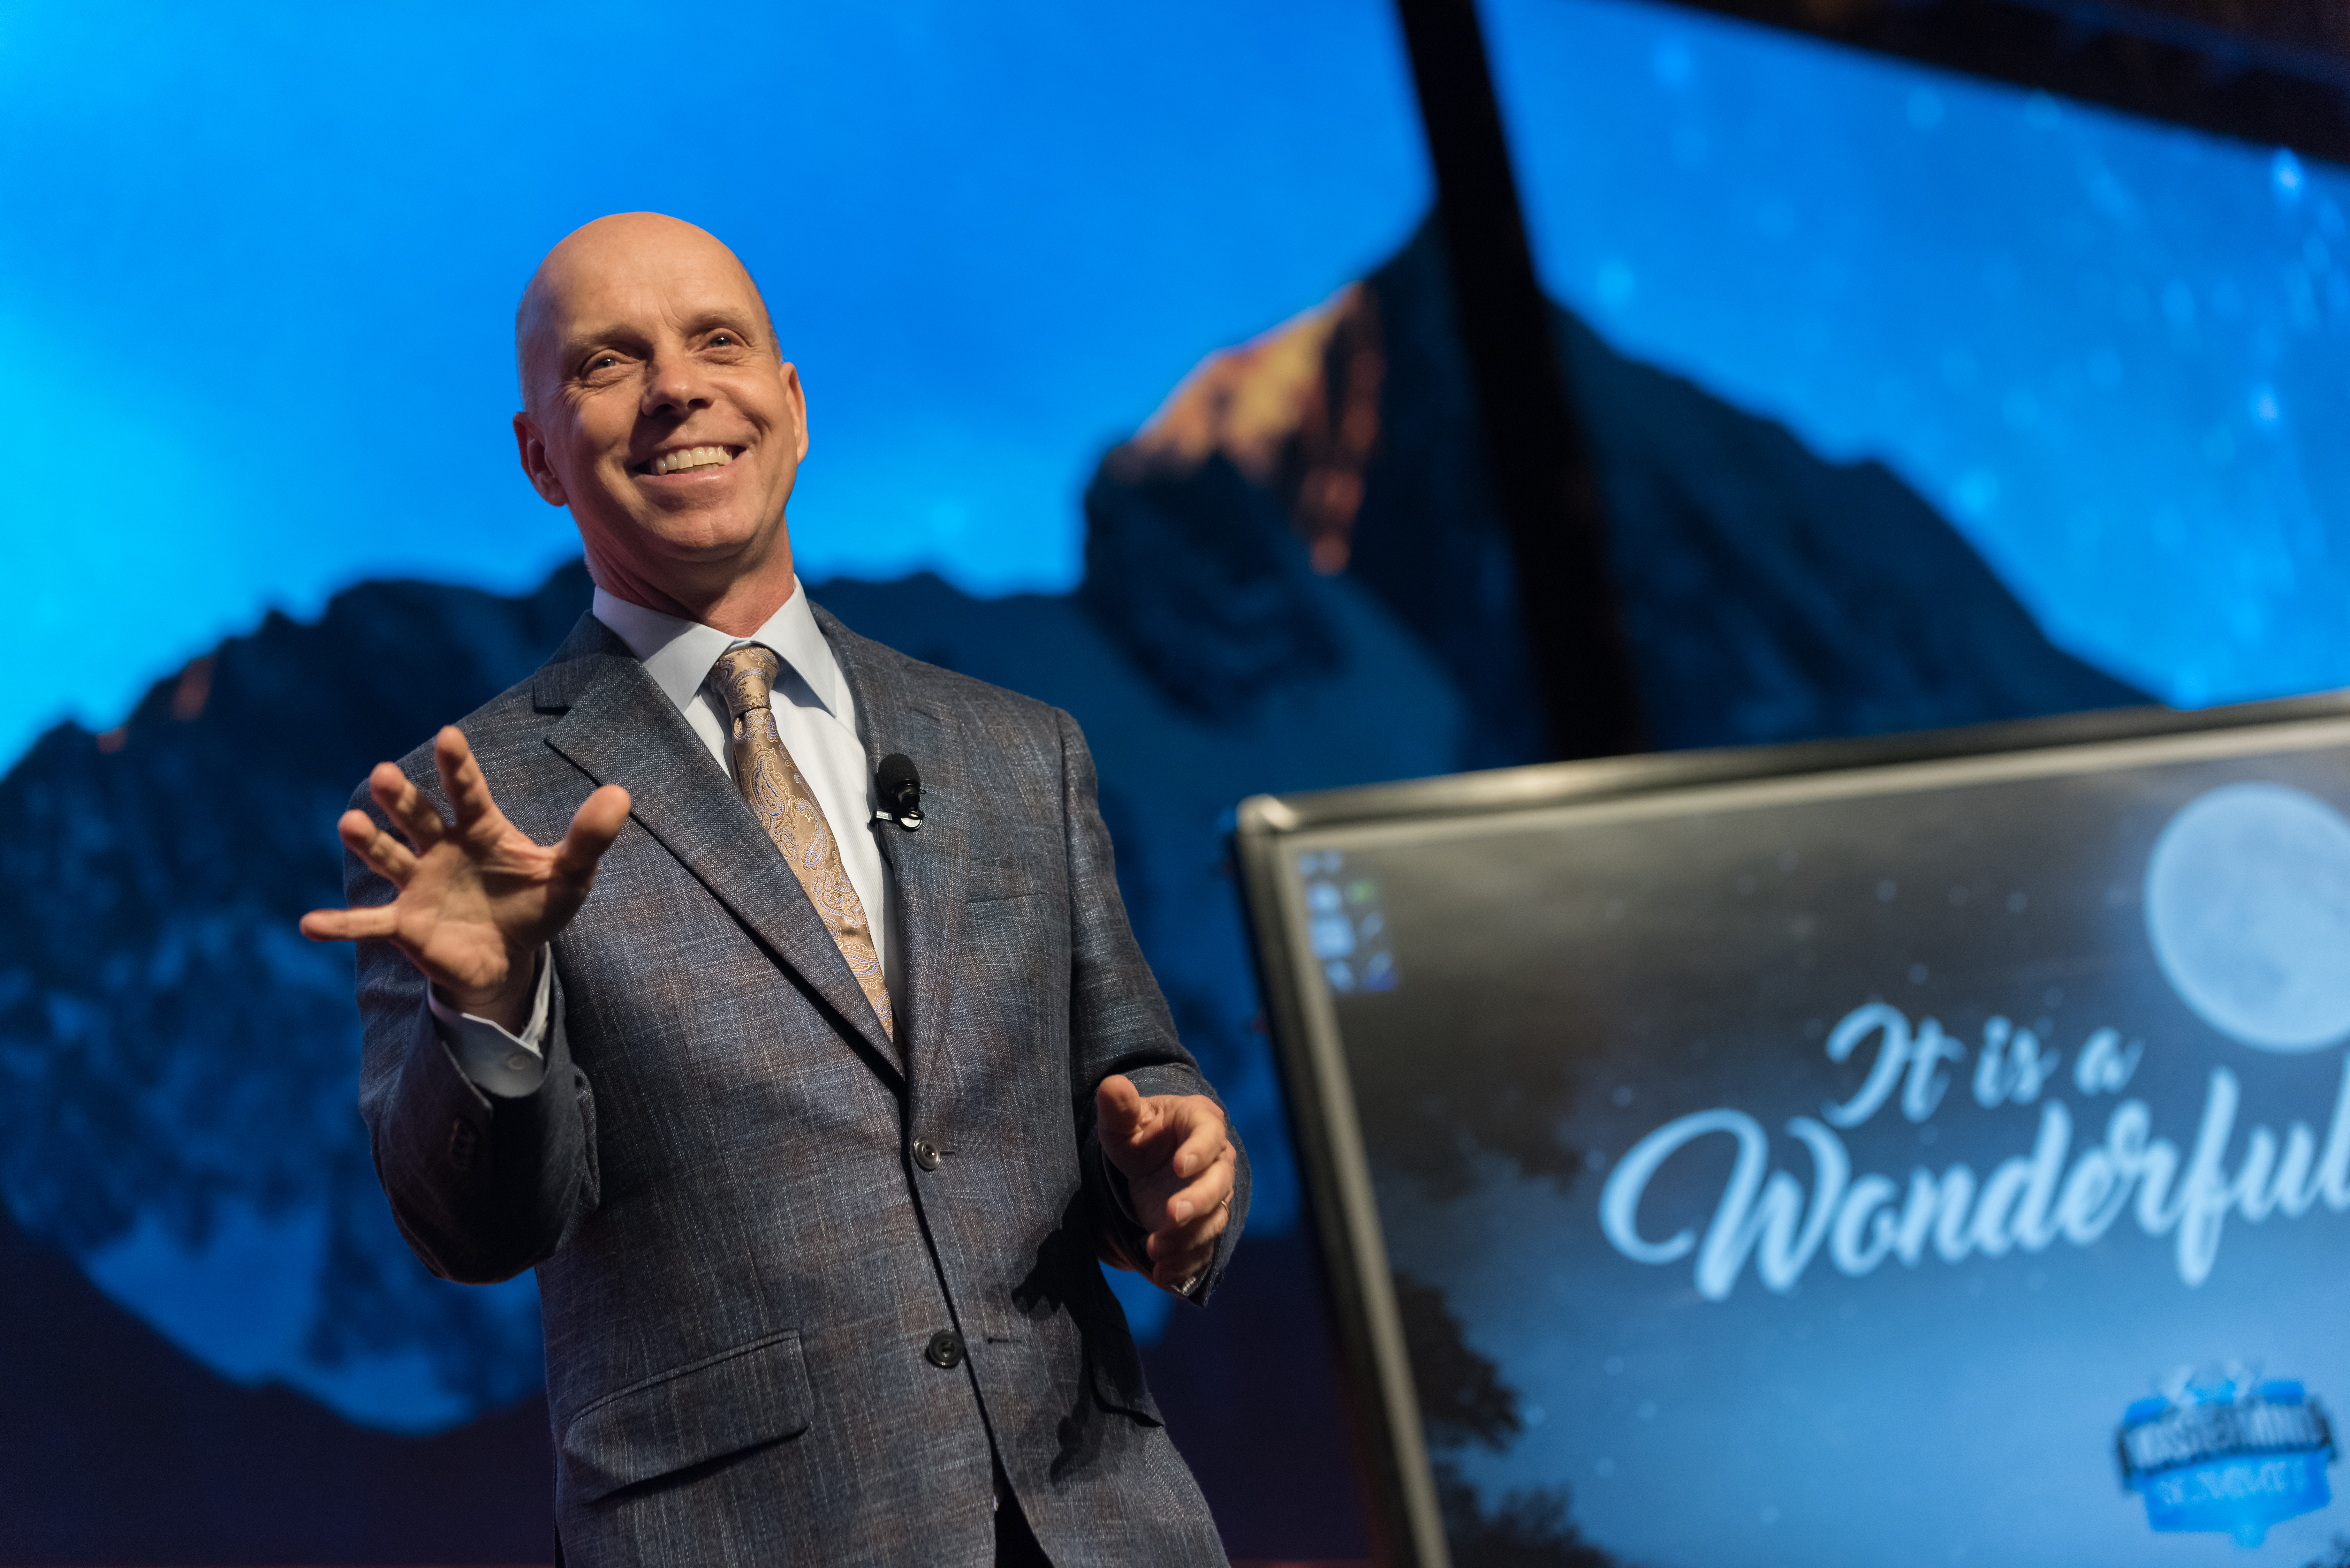 Olympic champion, Scott Hamilton as featured on Jesus Calling podcast